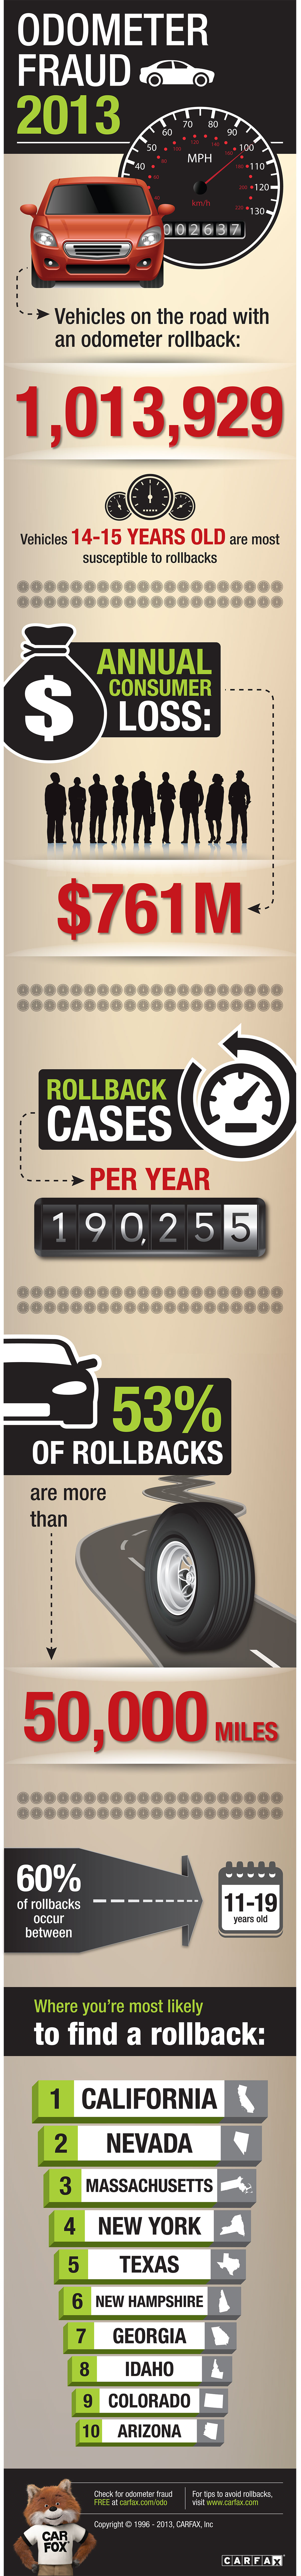 Odometer Fraud Infographic 2013